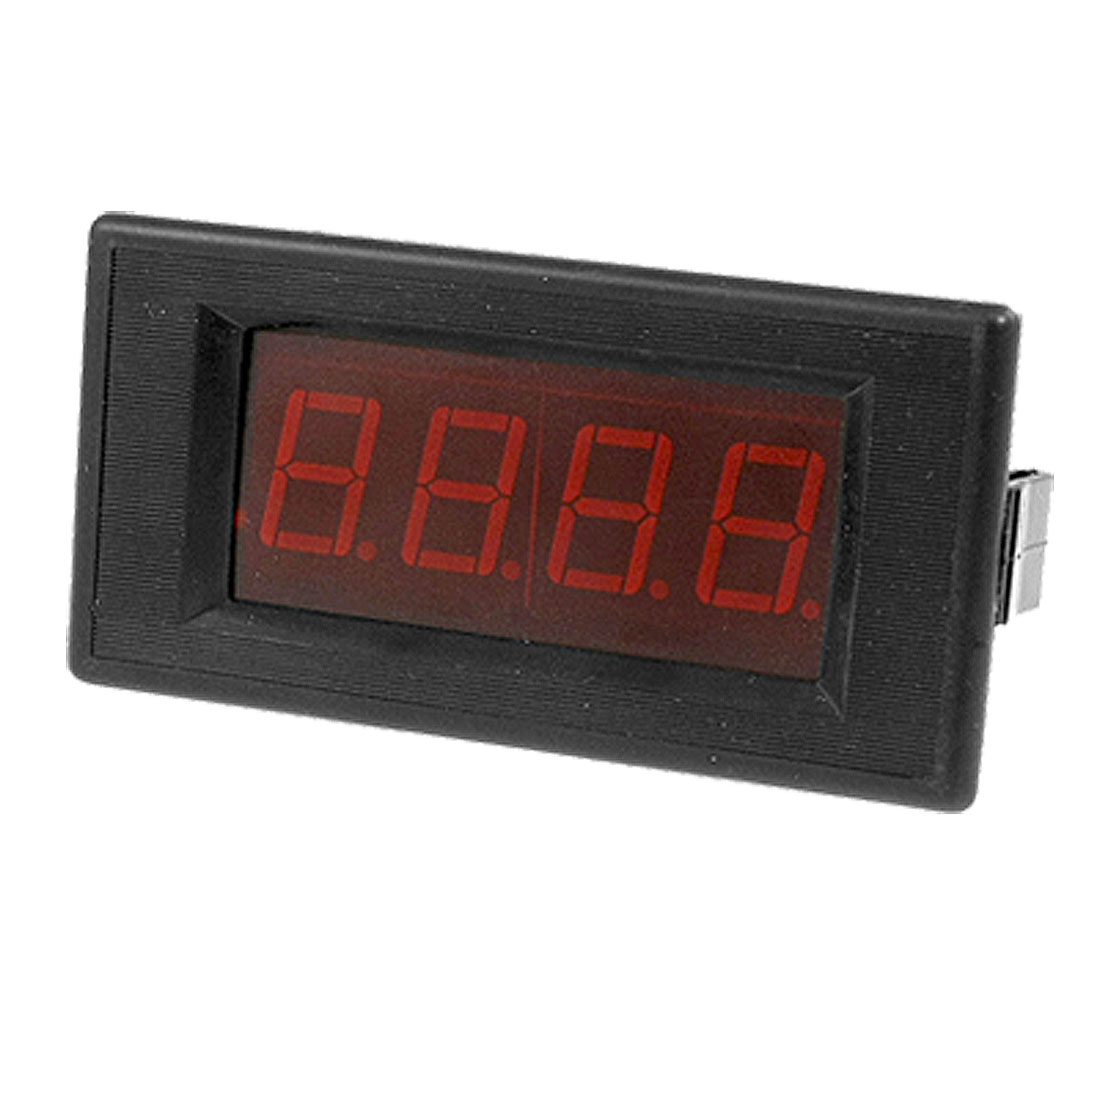 Red LED Digital Display 0-200V Voltage Test Panel Voltmeter